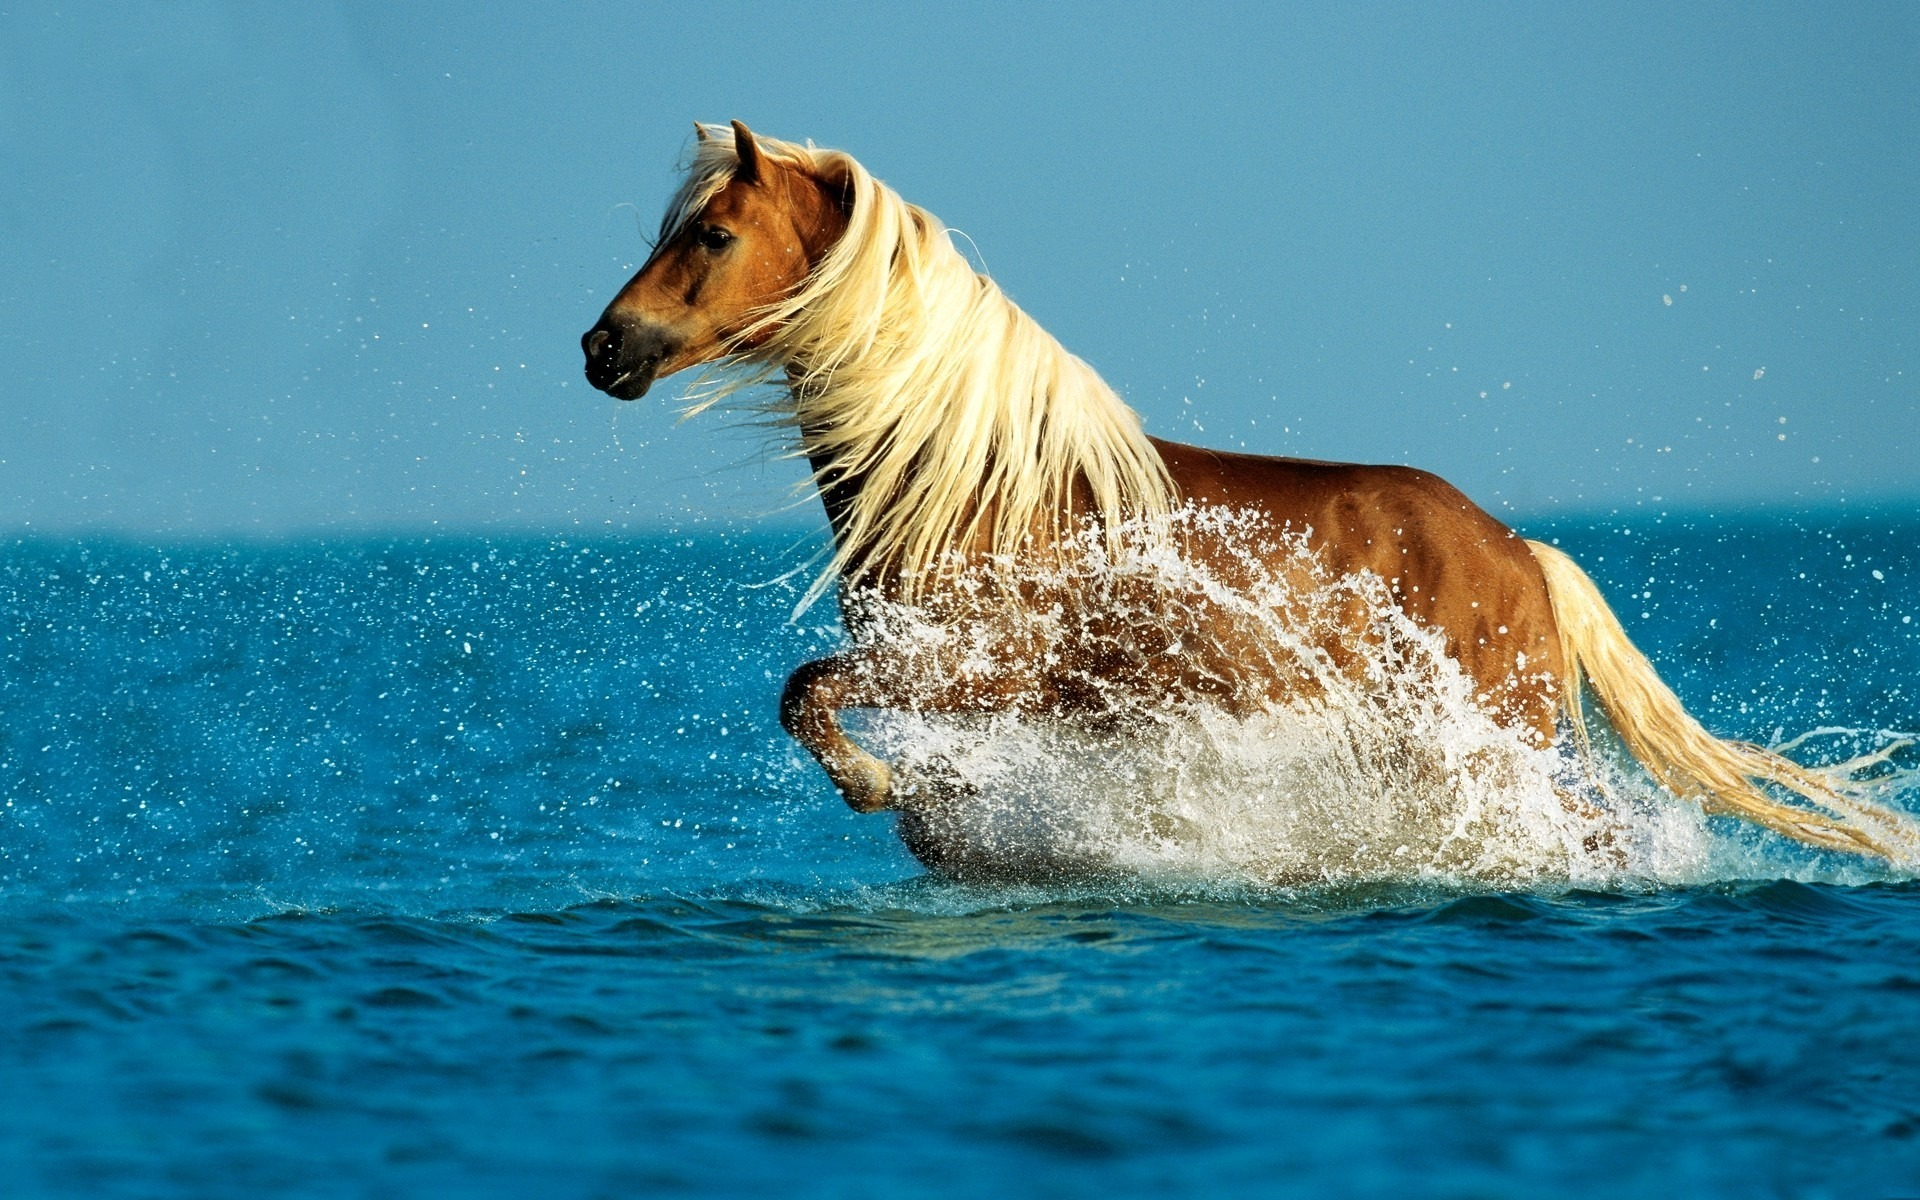 Beautiful Wallpaper Horse Stunning - horse3  Photograph_846227.jpg